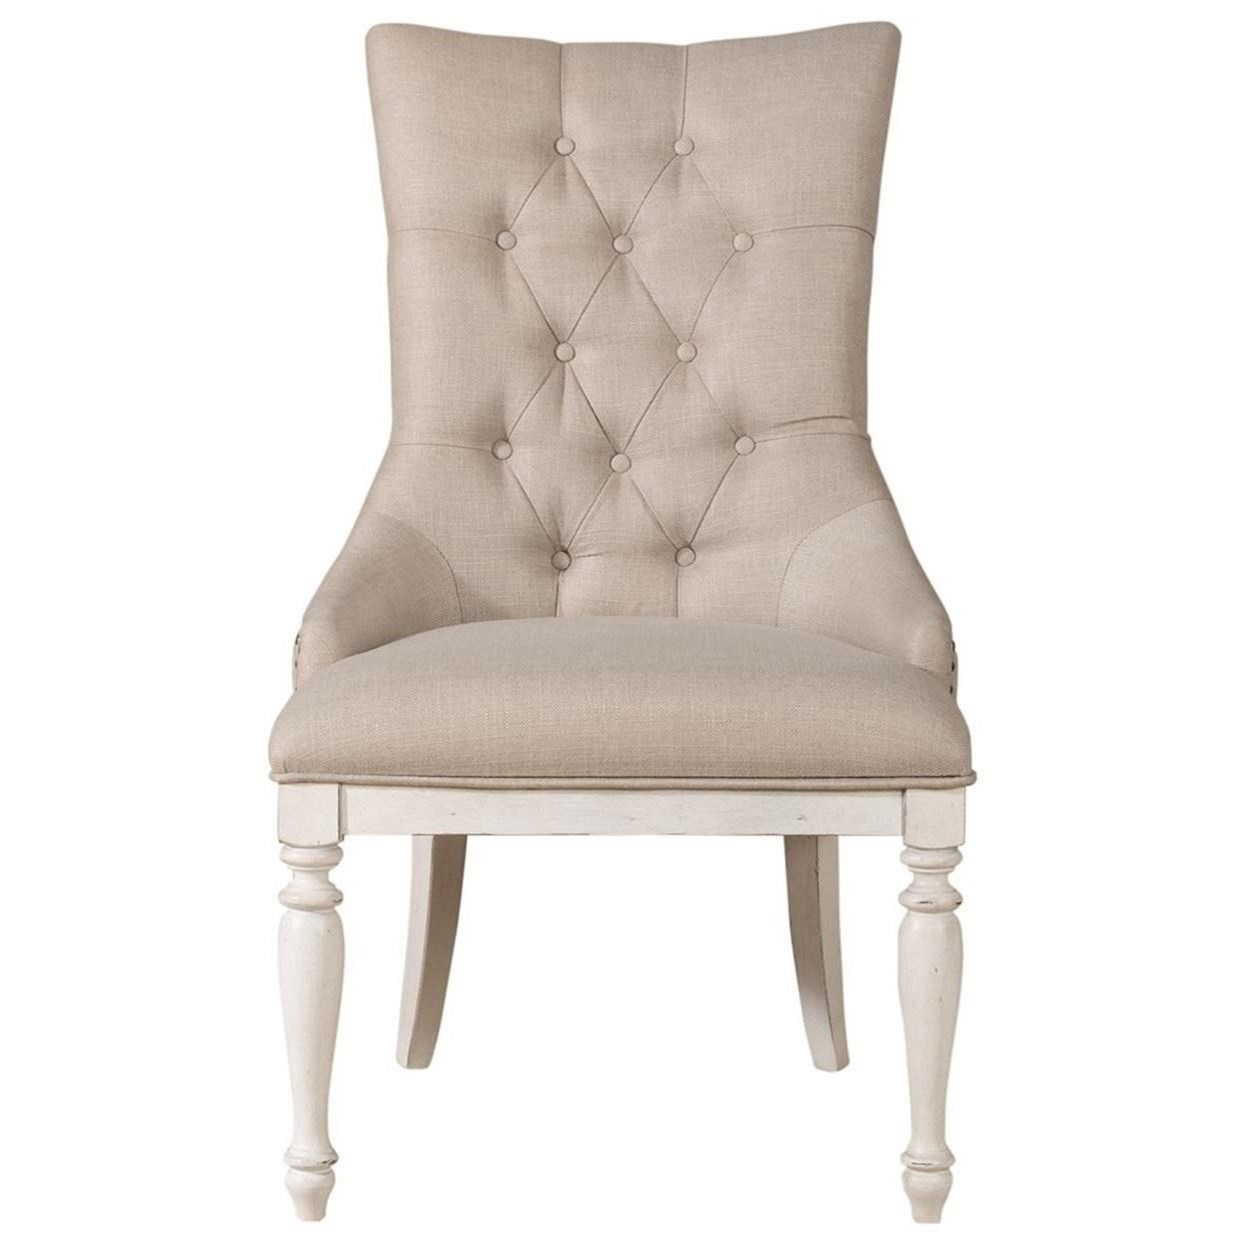 Abbey Road Upholstered Side Chair by Liberty Furniture at Adcock Furniture